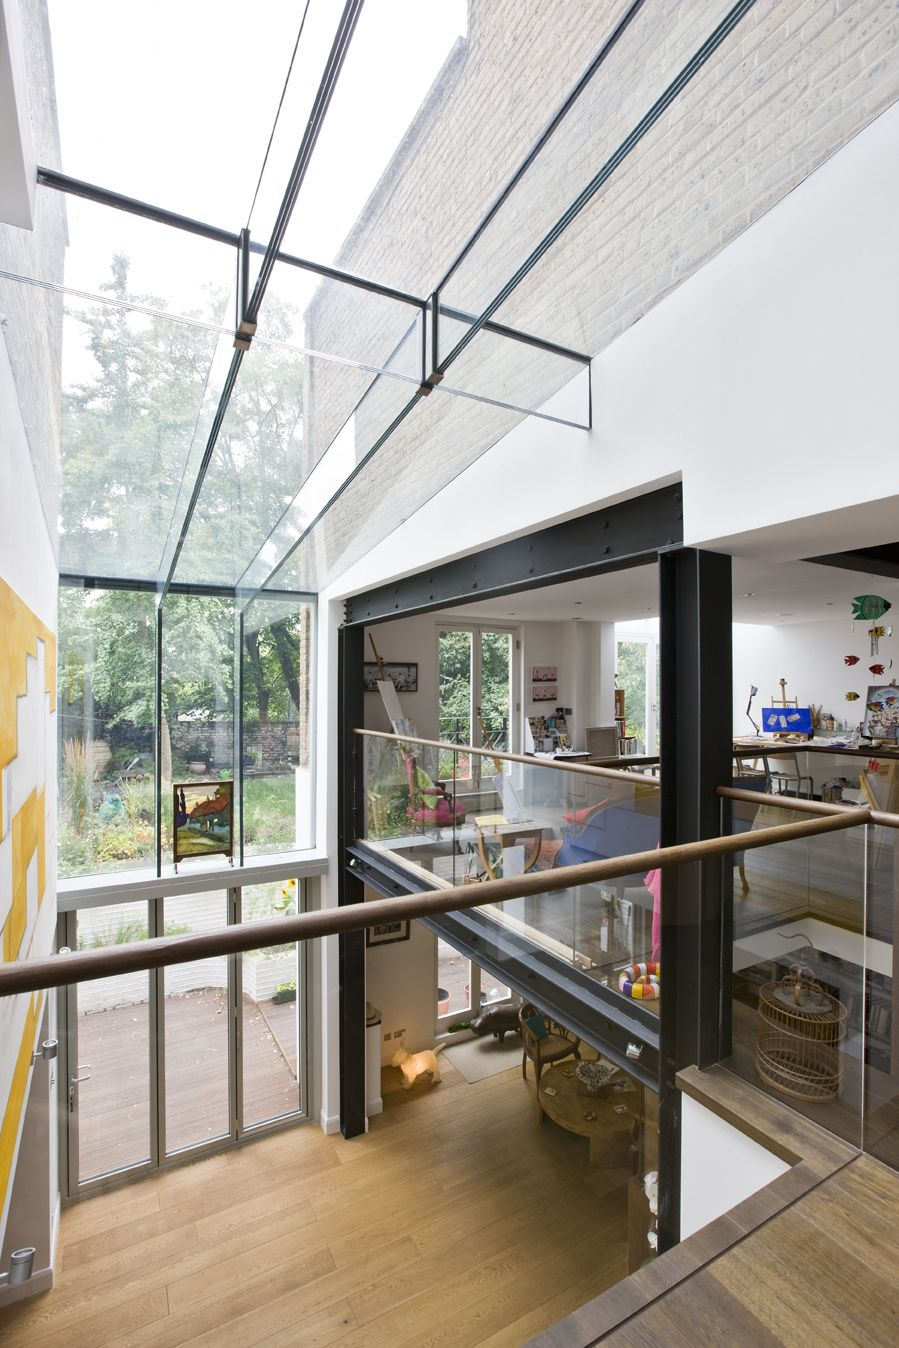 Modern conservatory design ideas - Tromb Contemporary Modern Conservatories And Conservatory Design London Structural Glazing